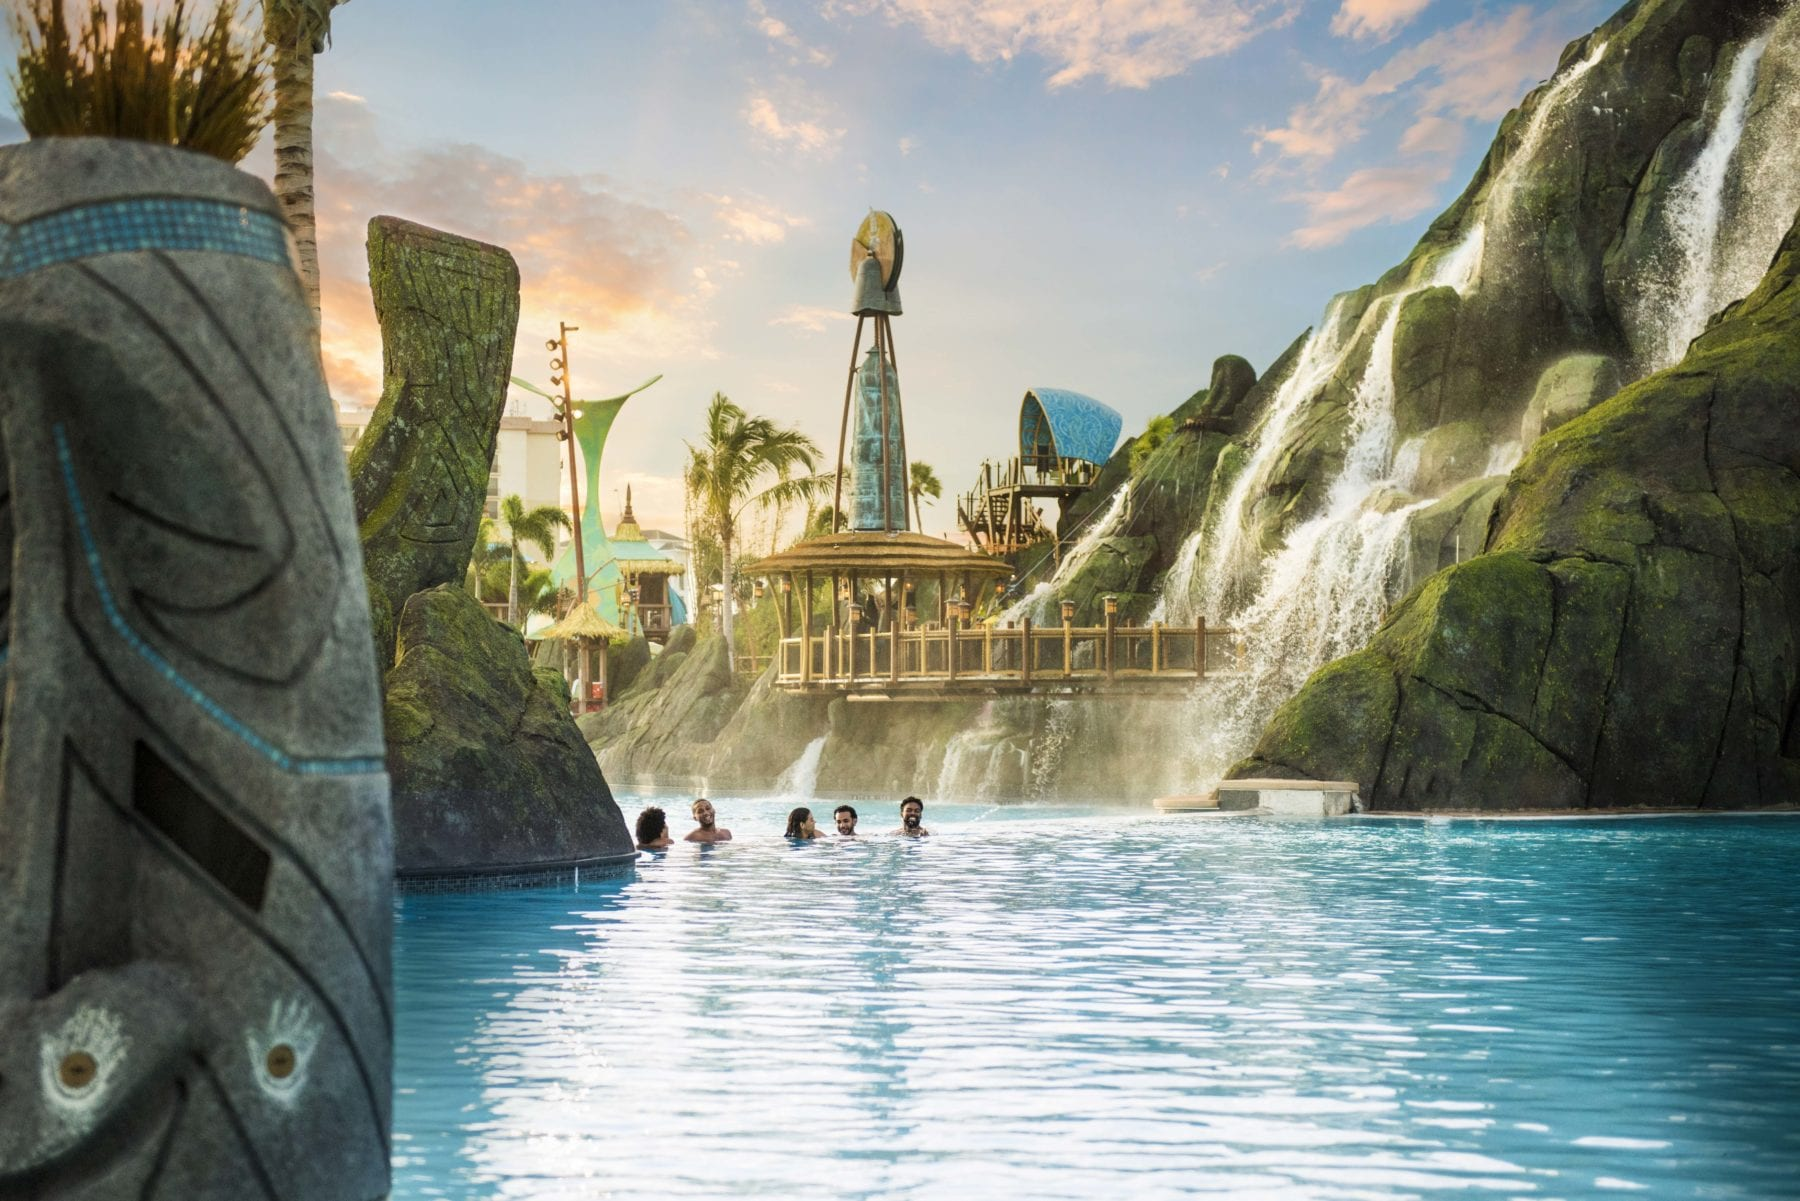 Plan a trip to Volcano Bay Hours